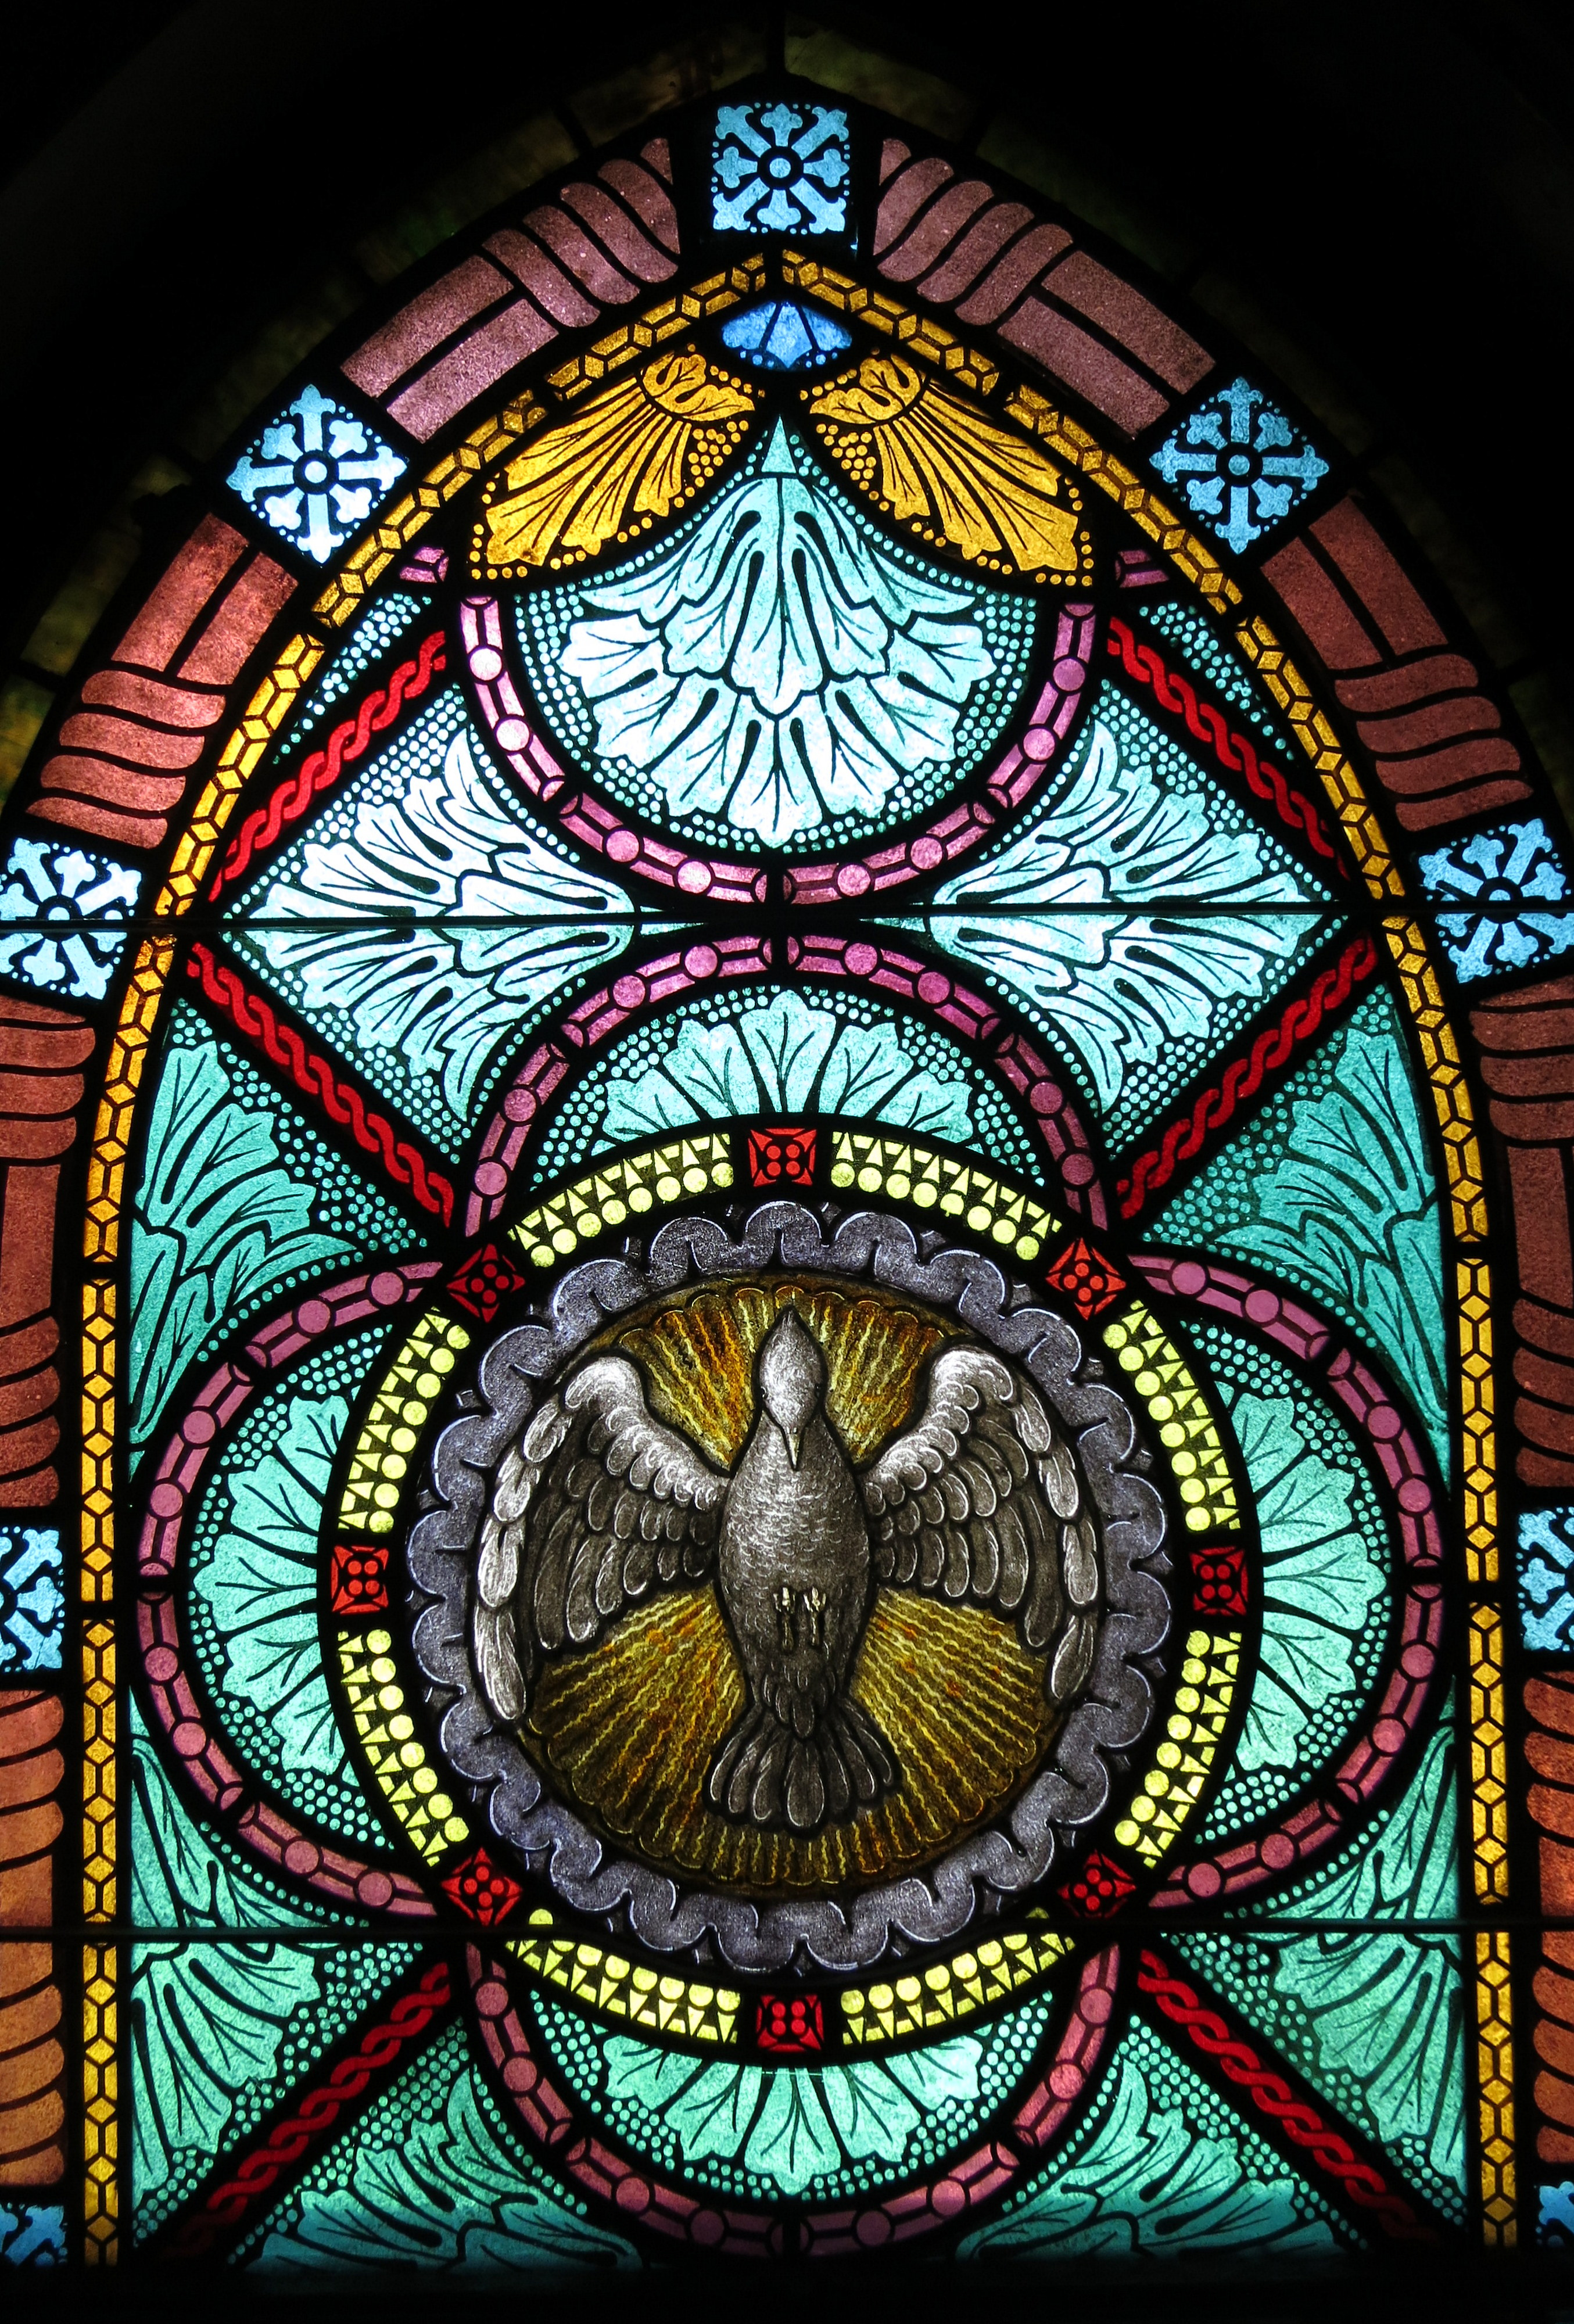 Confirmation Stained Glass Image